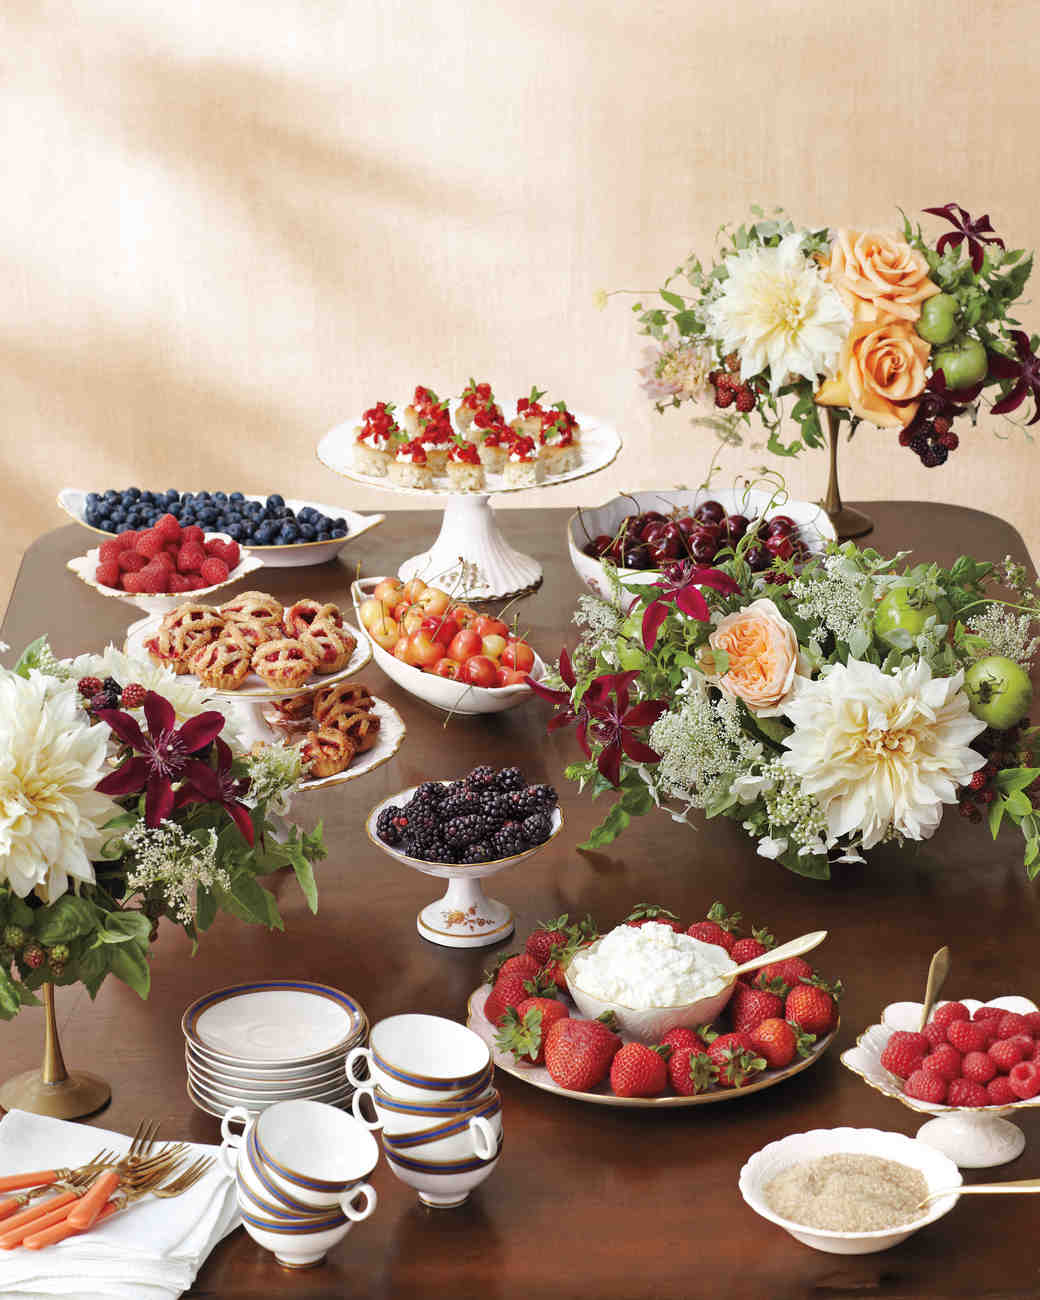 curate a sweet spread